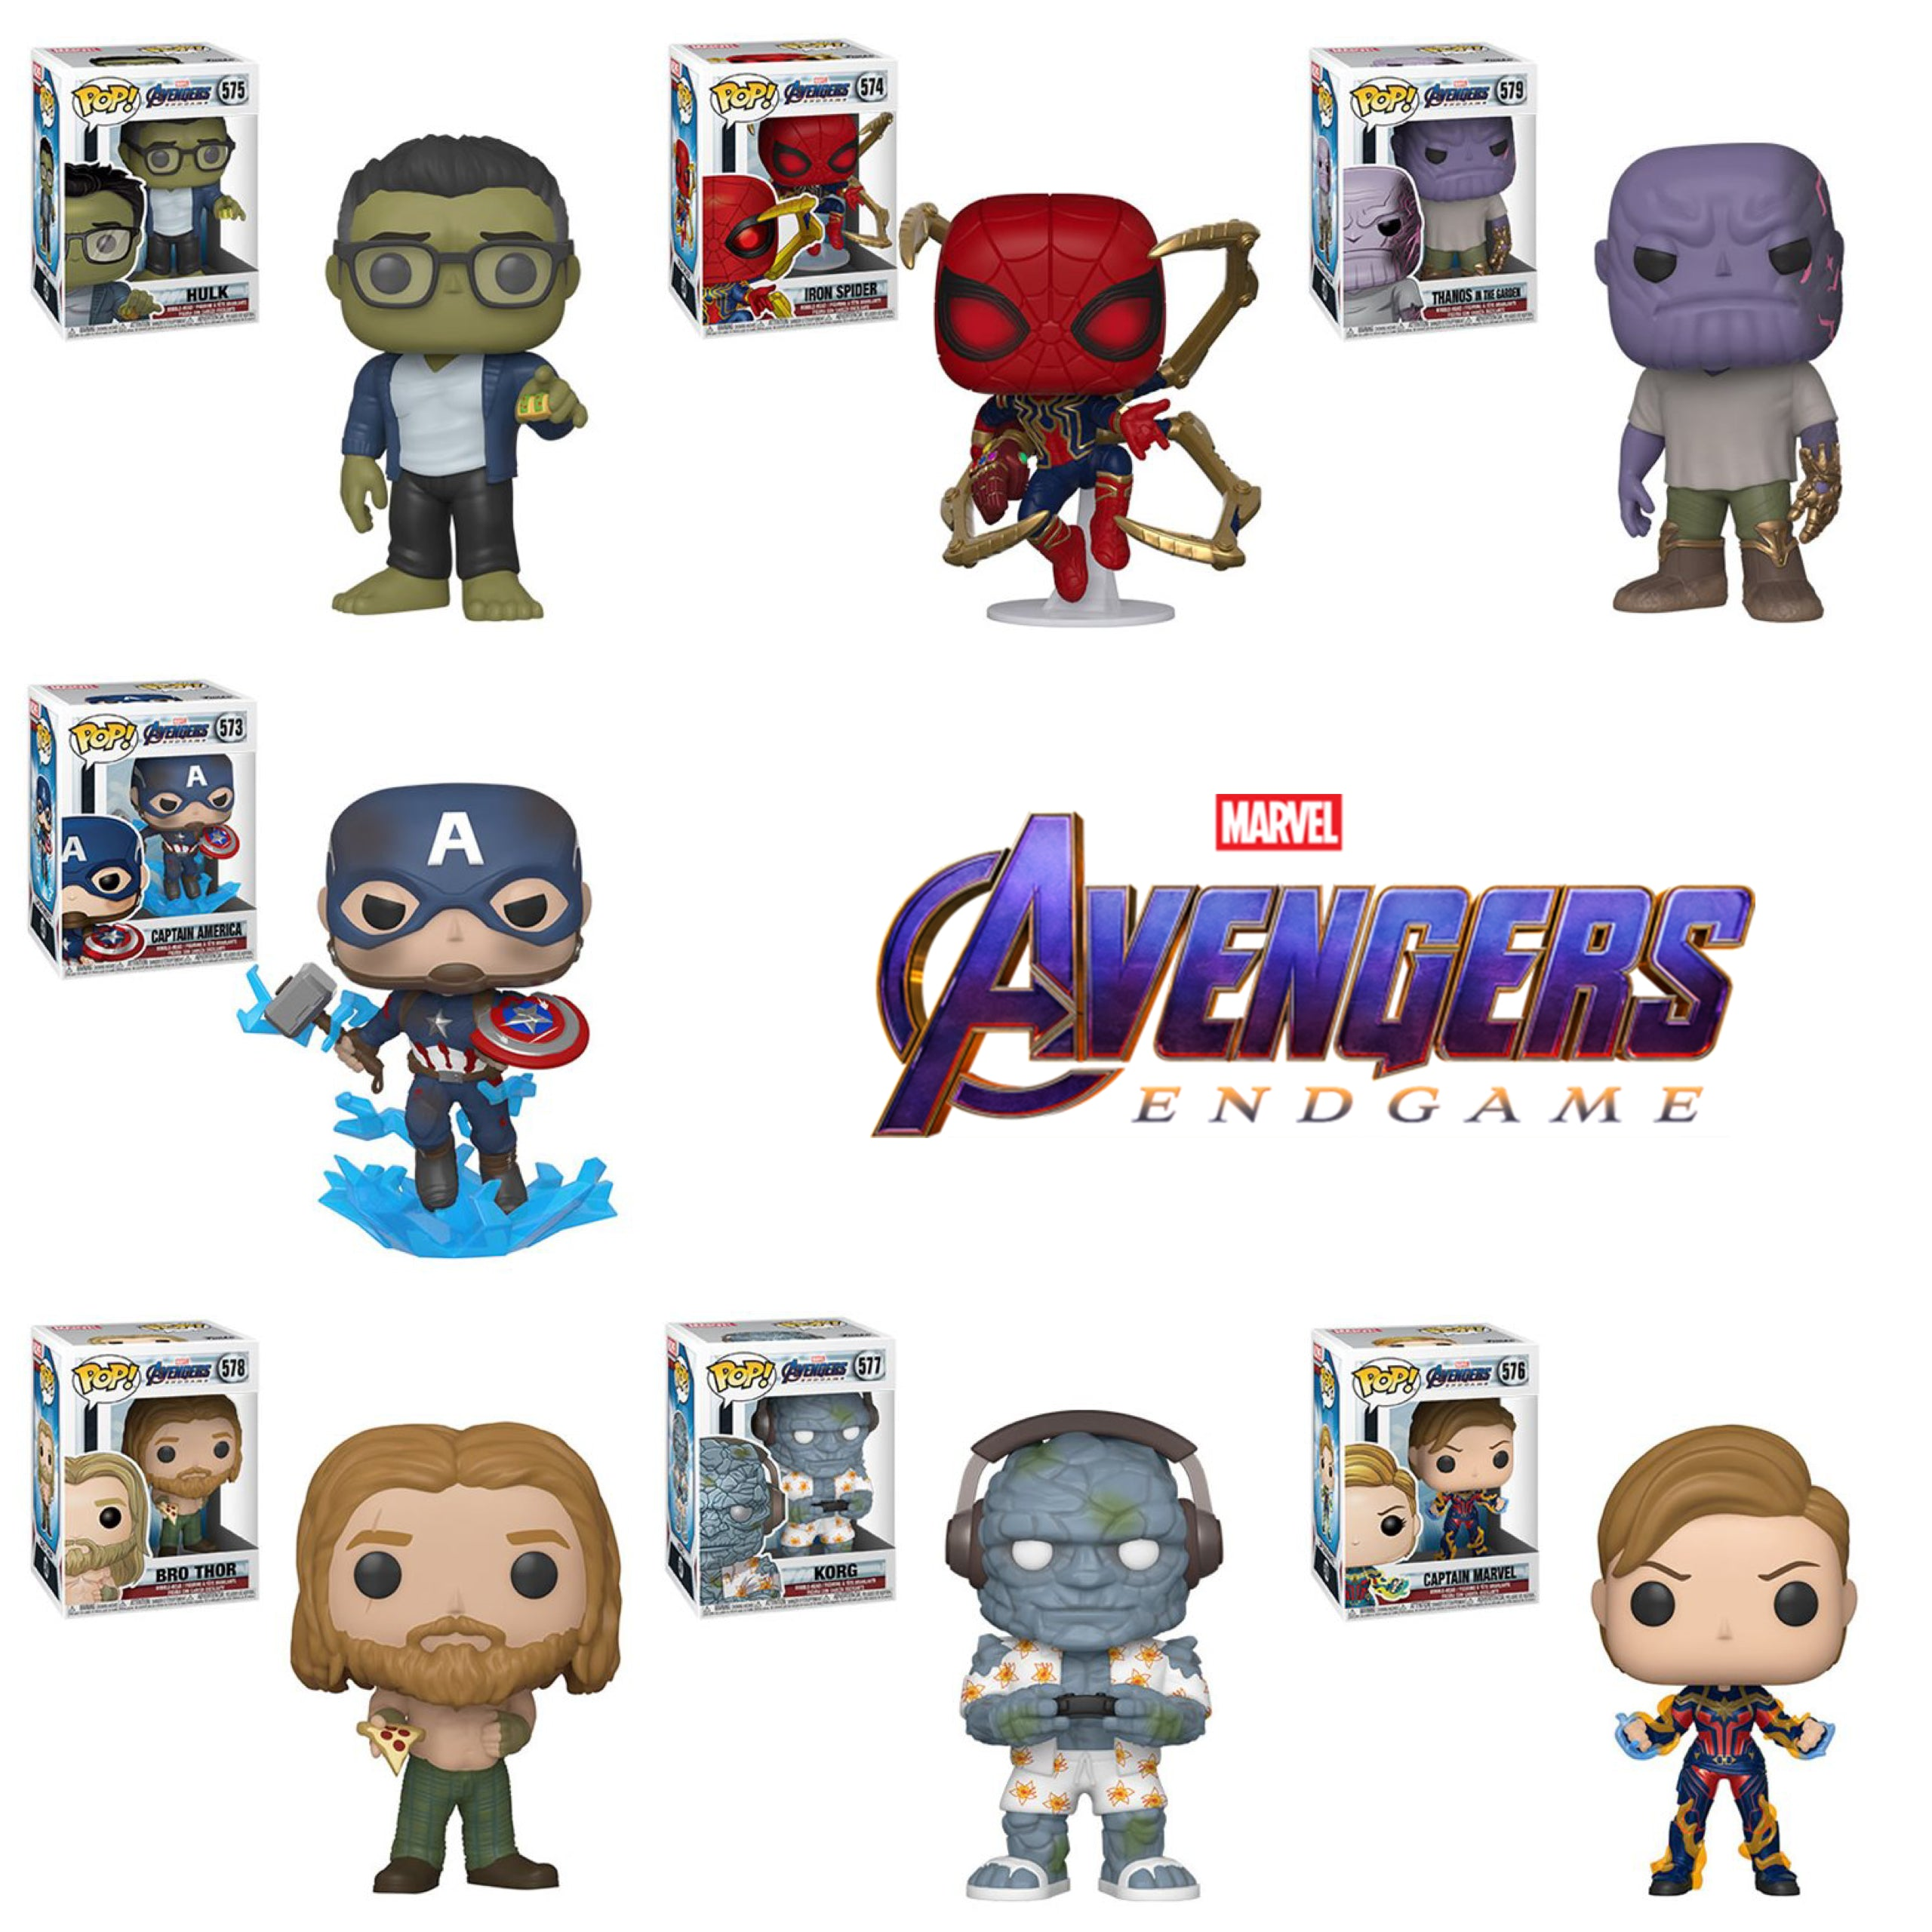 Avengers Endgame Wave 2 Bundle (7 Figures)